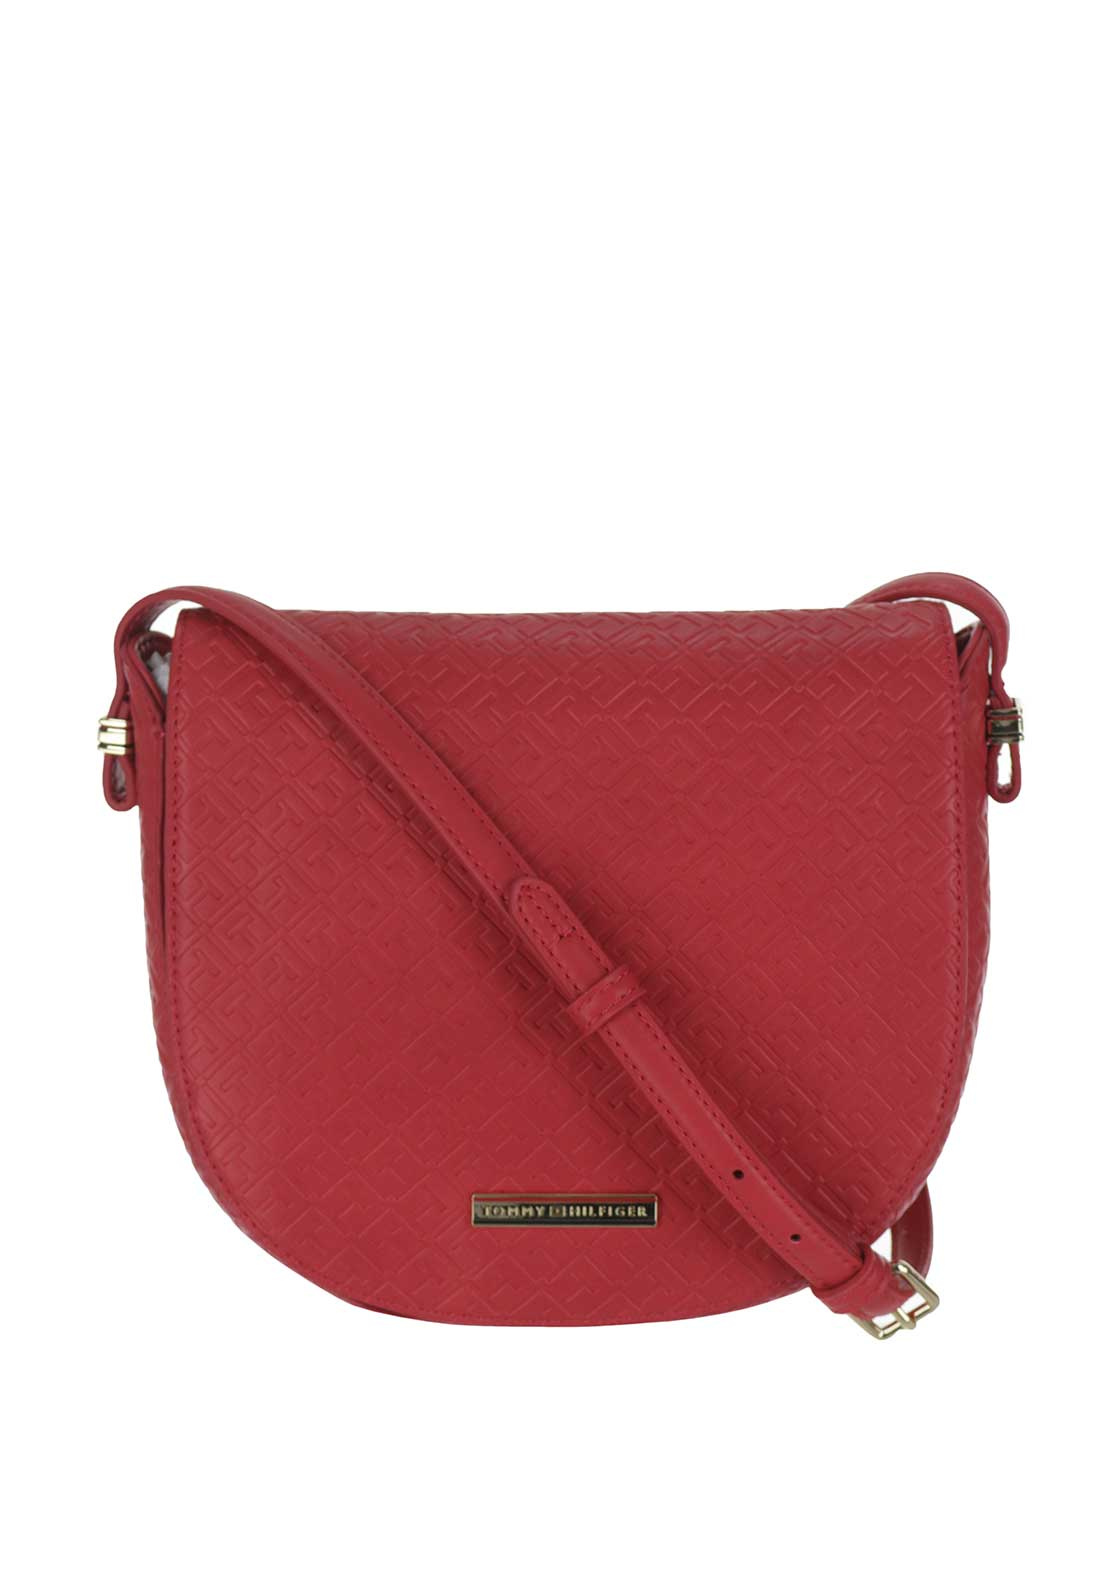 Tommy Hilfiger Emboss Flap Crossover Bag, Red